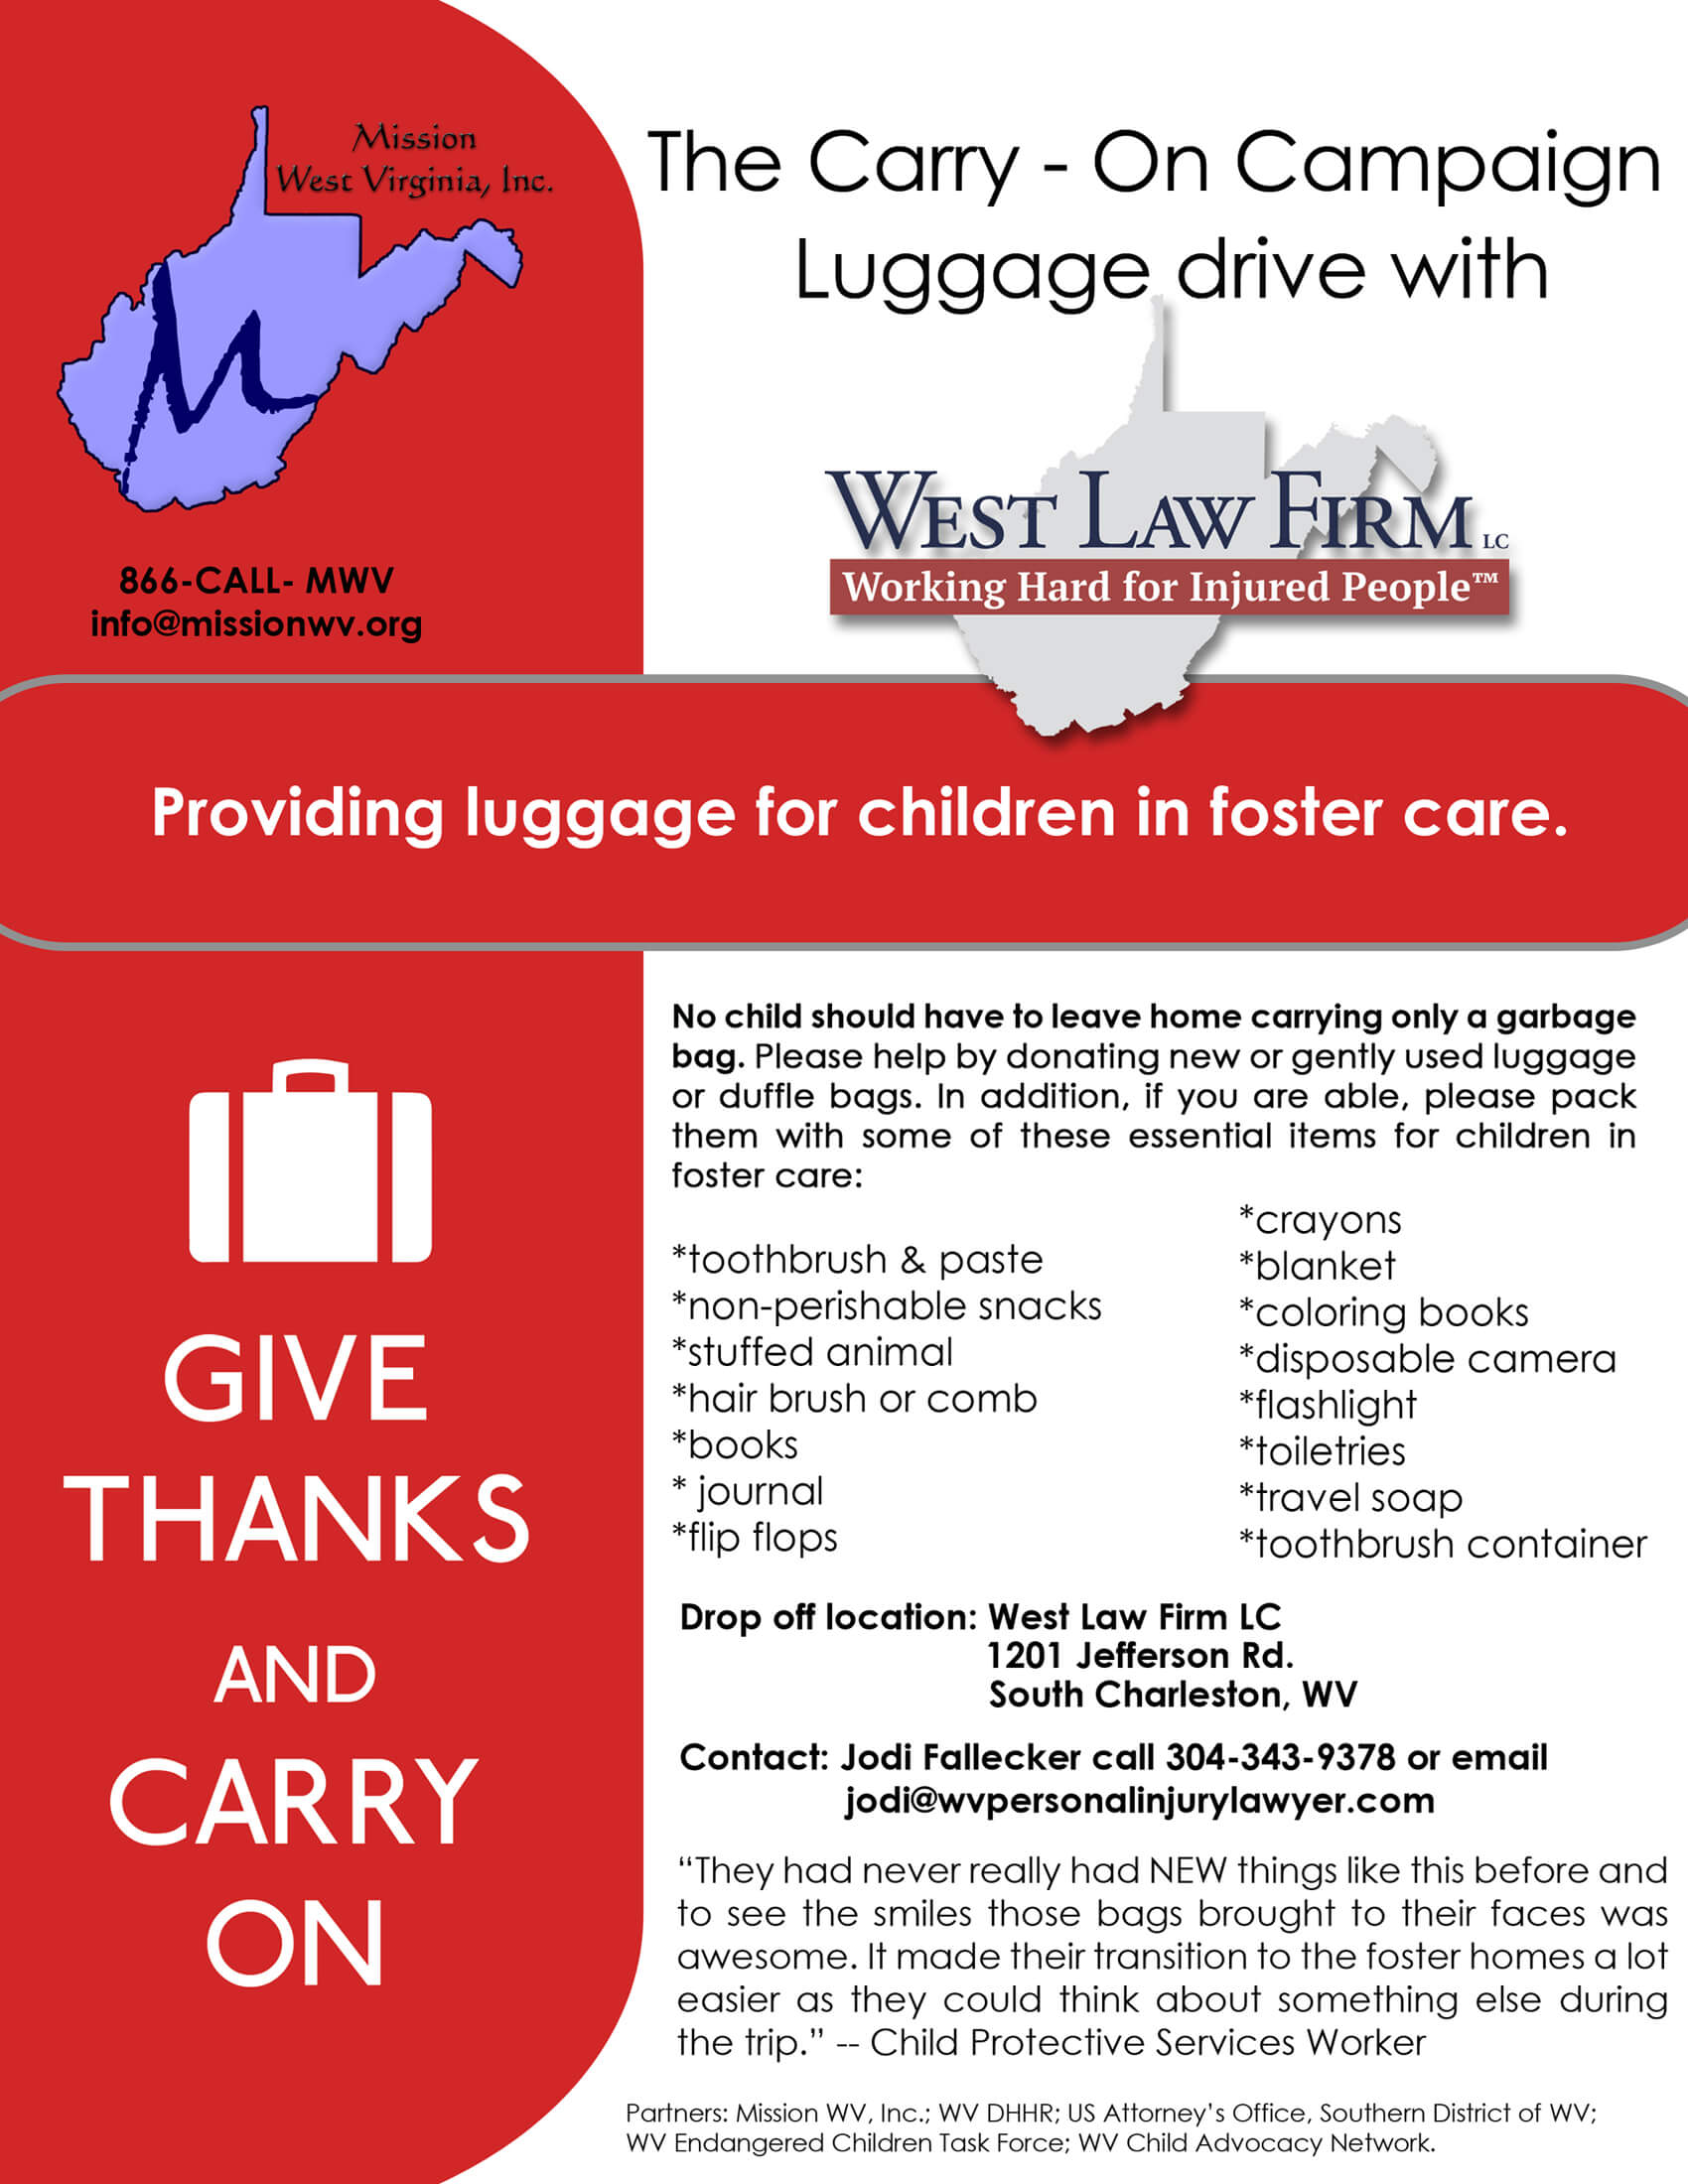 Wv colored childrens home - Flyer Of West Law Firm And The Carry On Campaign Dedicated To Providing Children In Foster